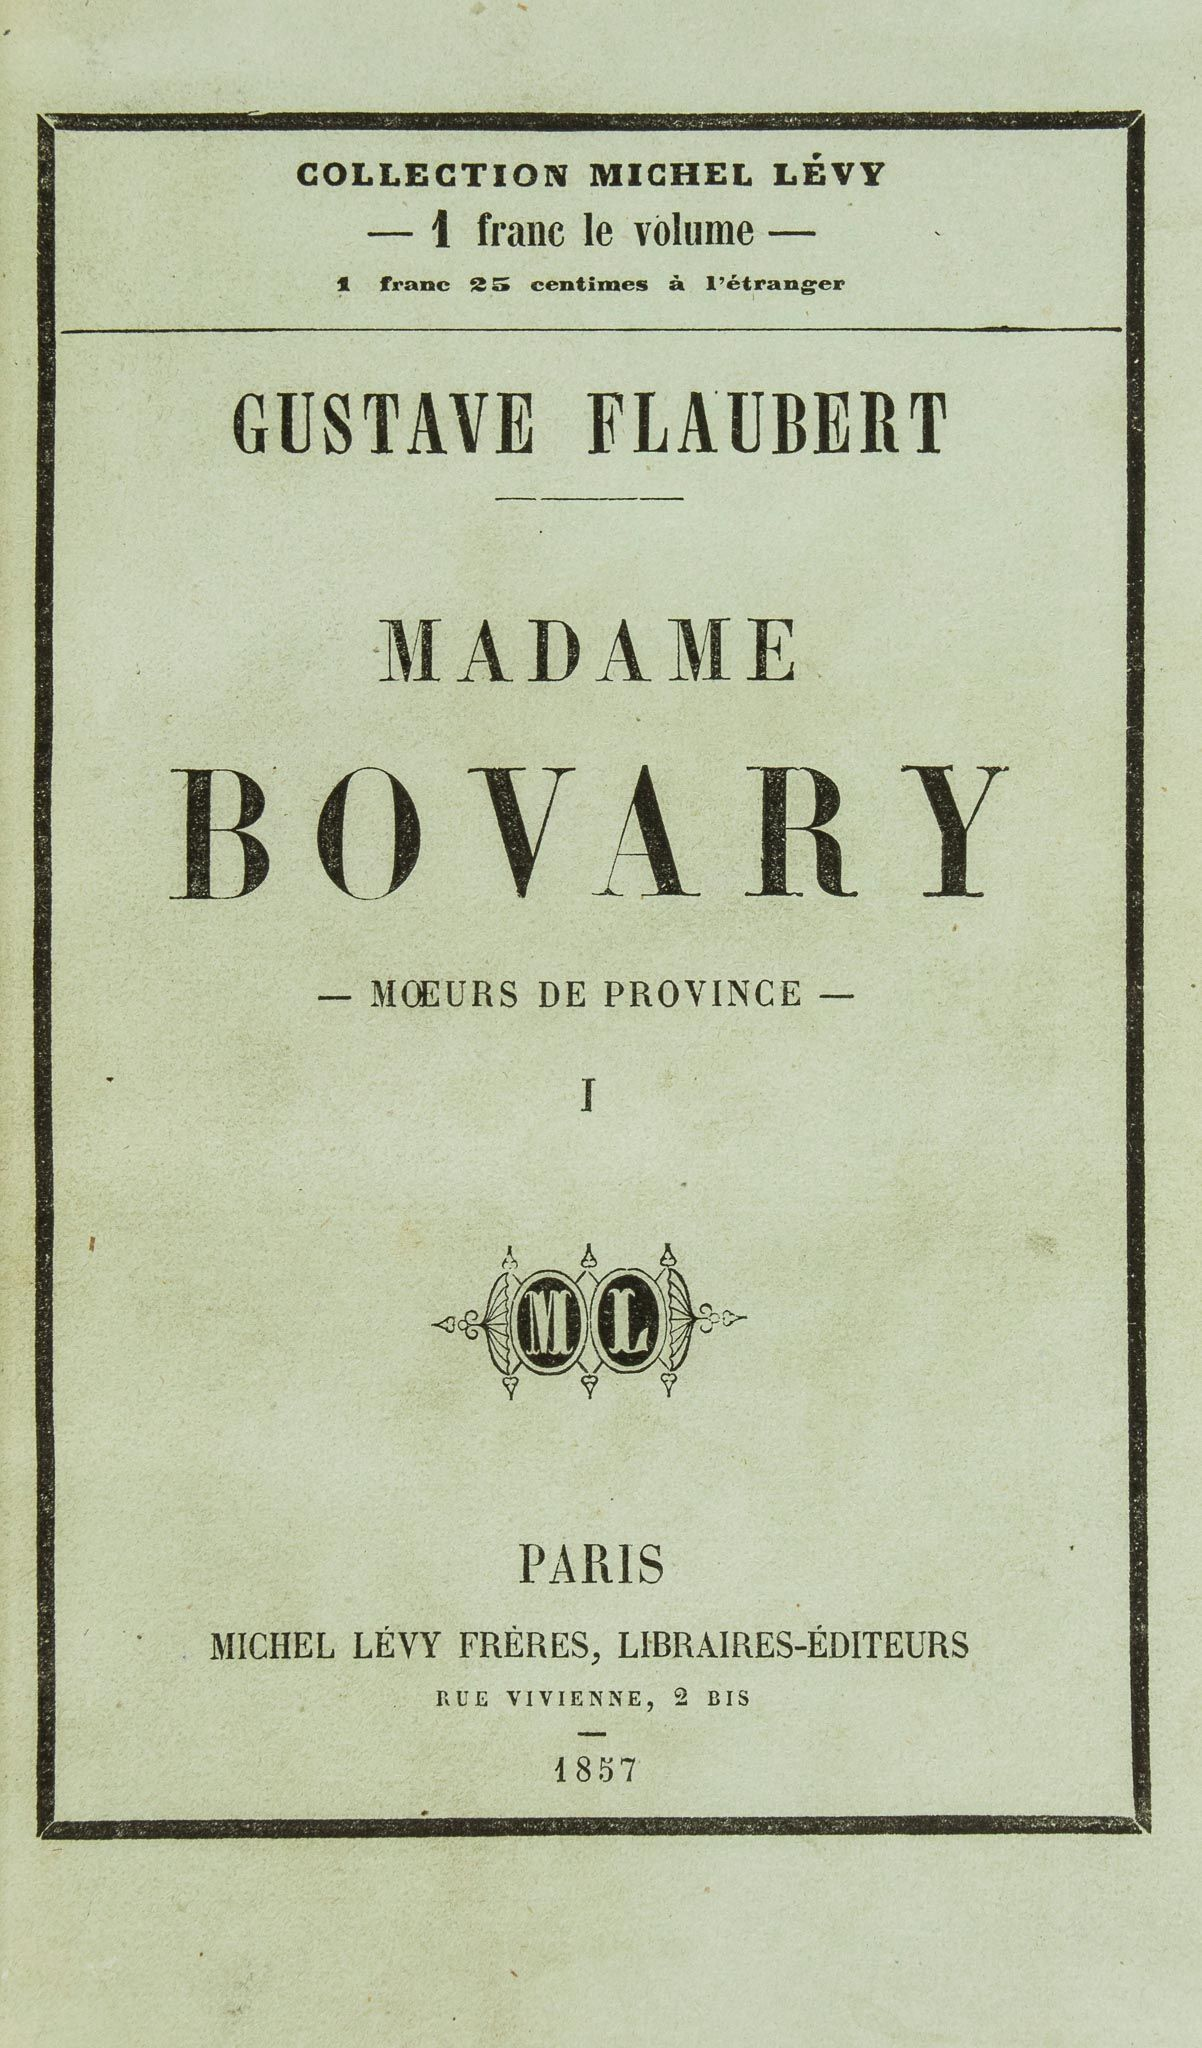 "a review of passage 2 in madame bovary by gustave flaubert Gustave flaubert's madame bovary is an intricate and compelling tale of a  young  i'll spend another fortnight sailing on these blue lakes, after which i'll go  to a  and the only emotional commentary within this passage is a moment of  free  paris, bernard j ""the search for glory in madame bovary: a horneyan  analysis."